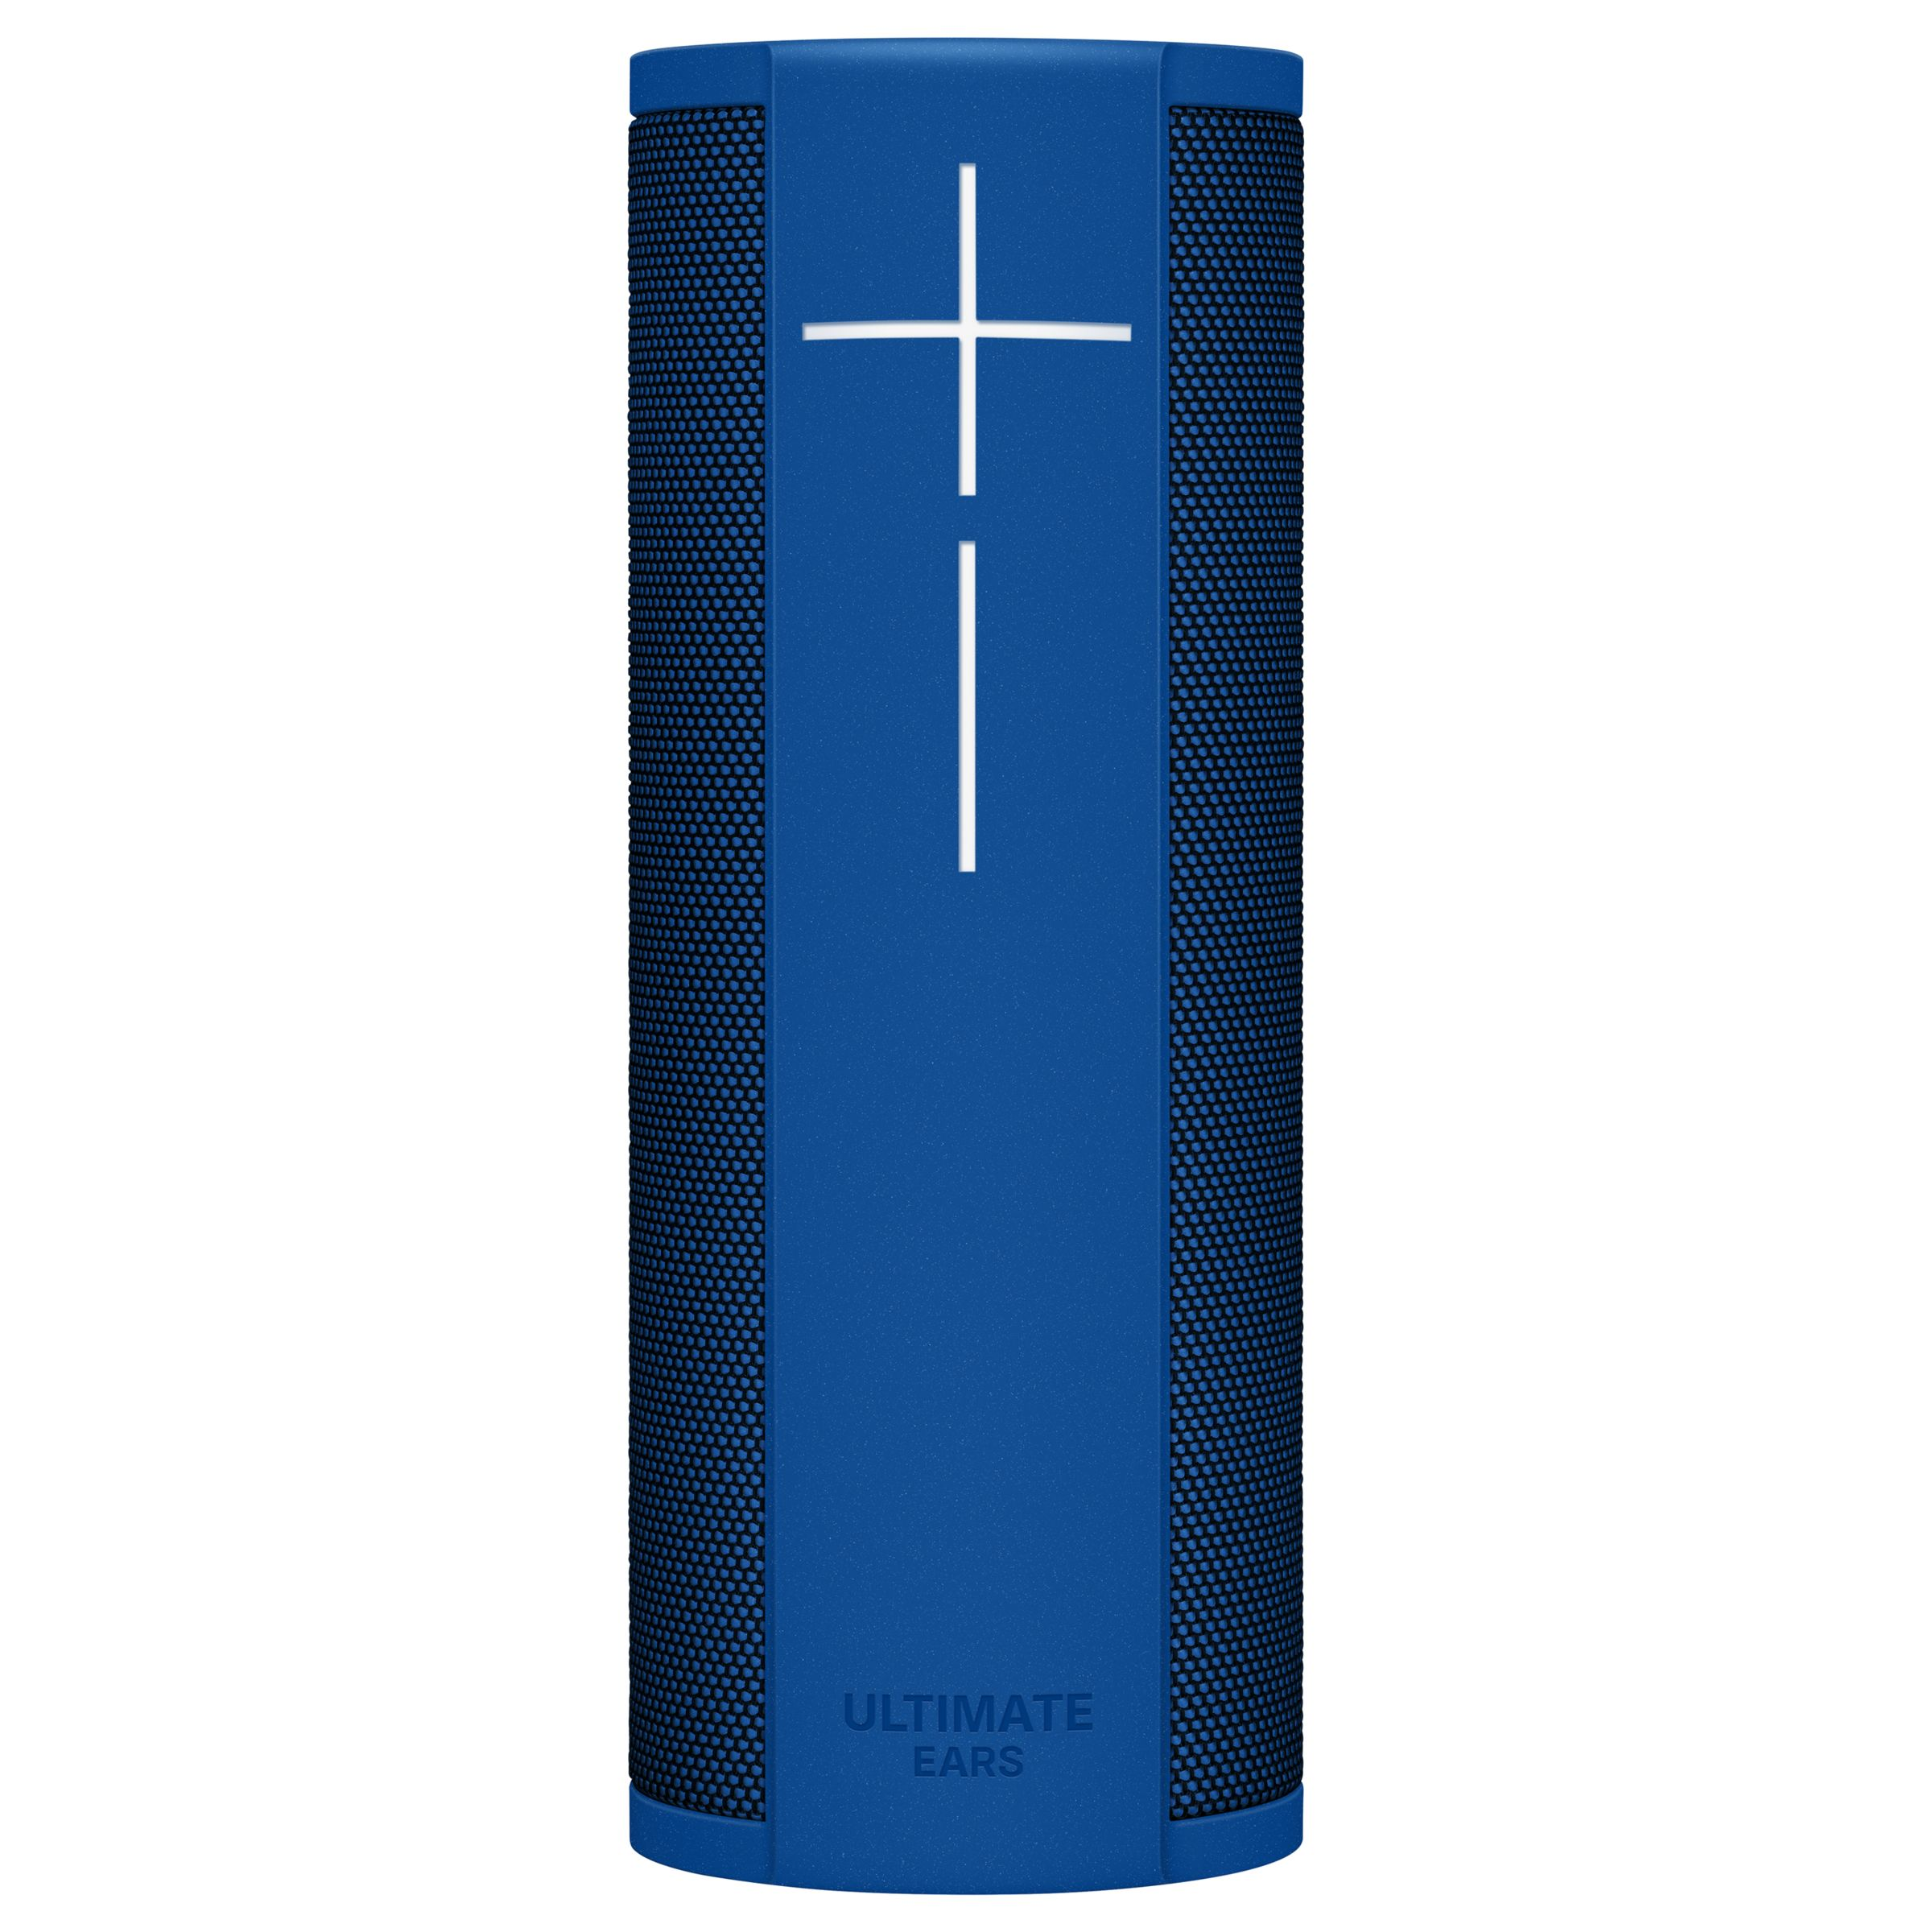 Portable Audio & Headphones Open-Minded Ultimate Ears Megaboom Boom2 Portable Speaker Bluetooth Wireless Waterproof